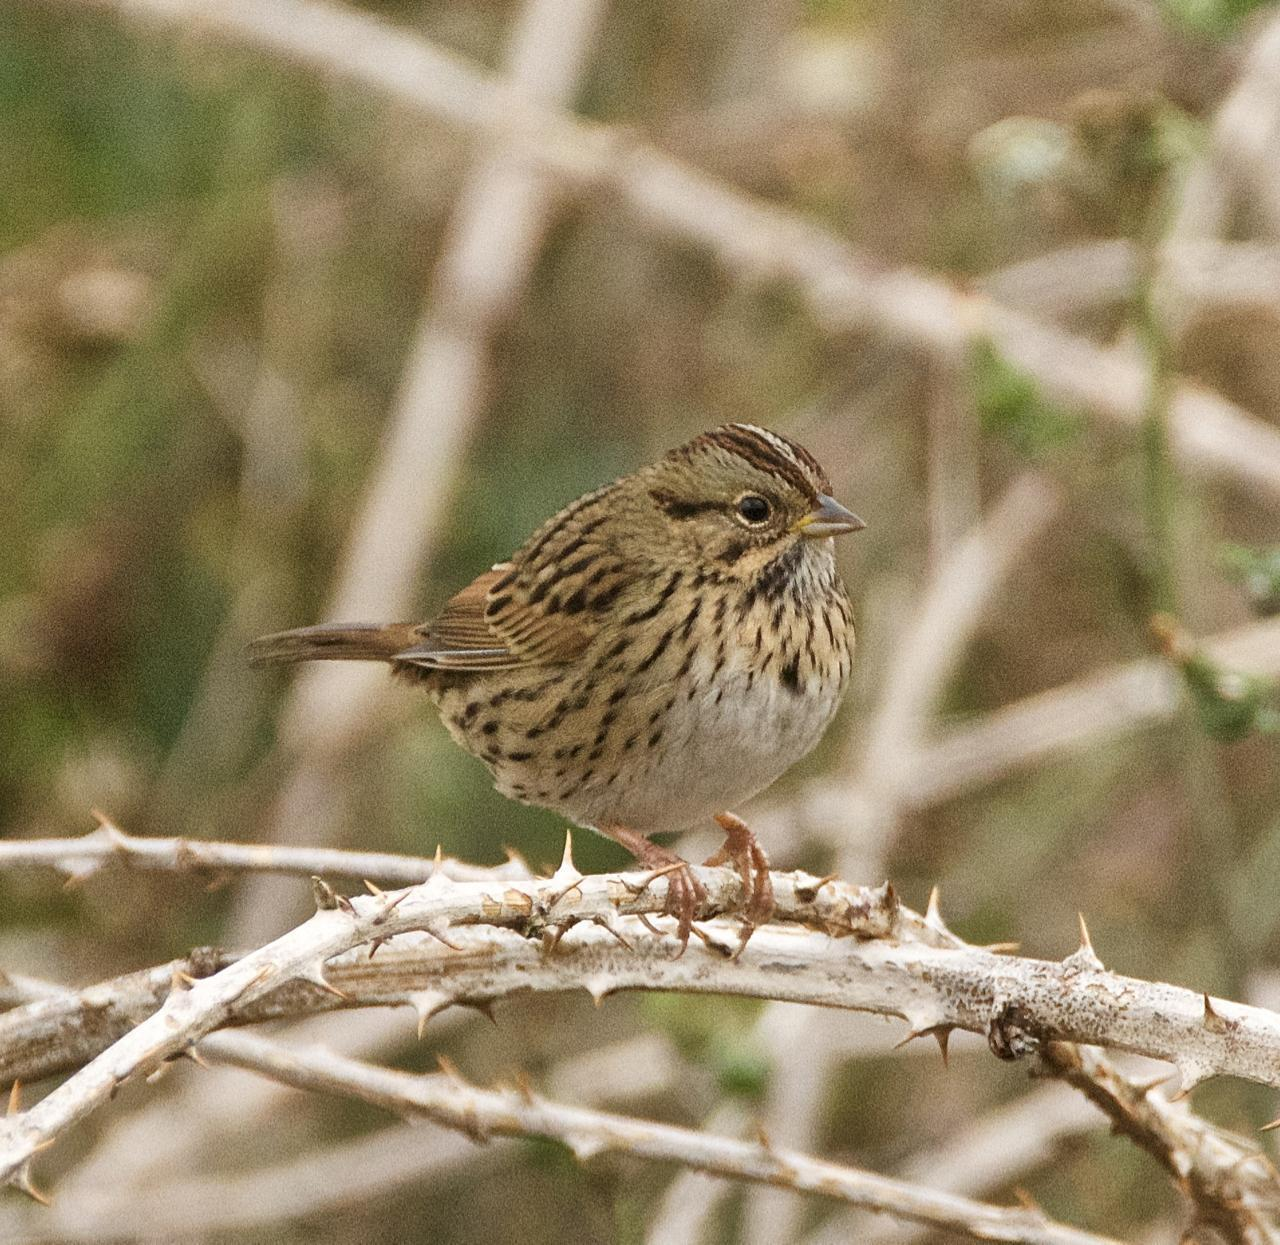 Lincoln's Sparrow Photo by Brian Avent